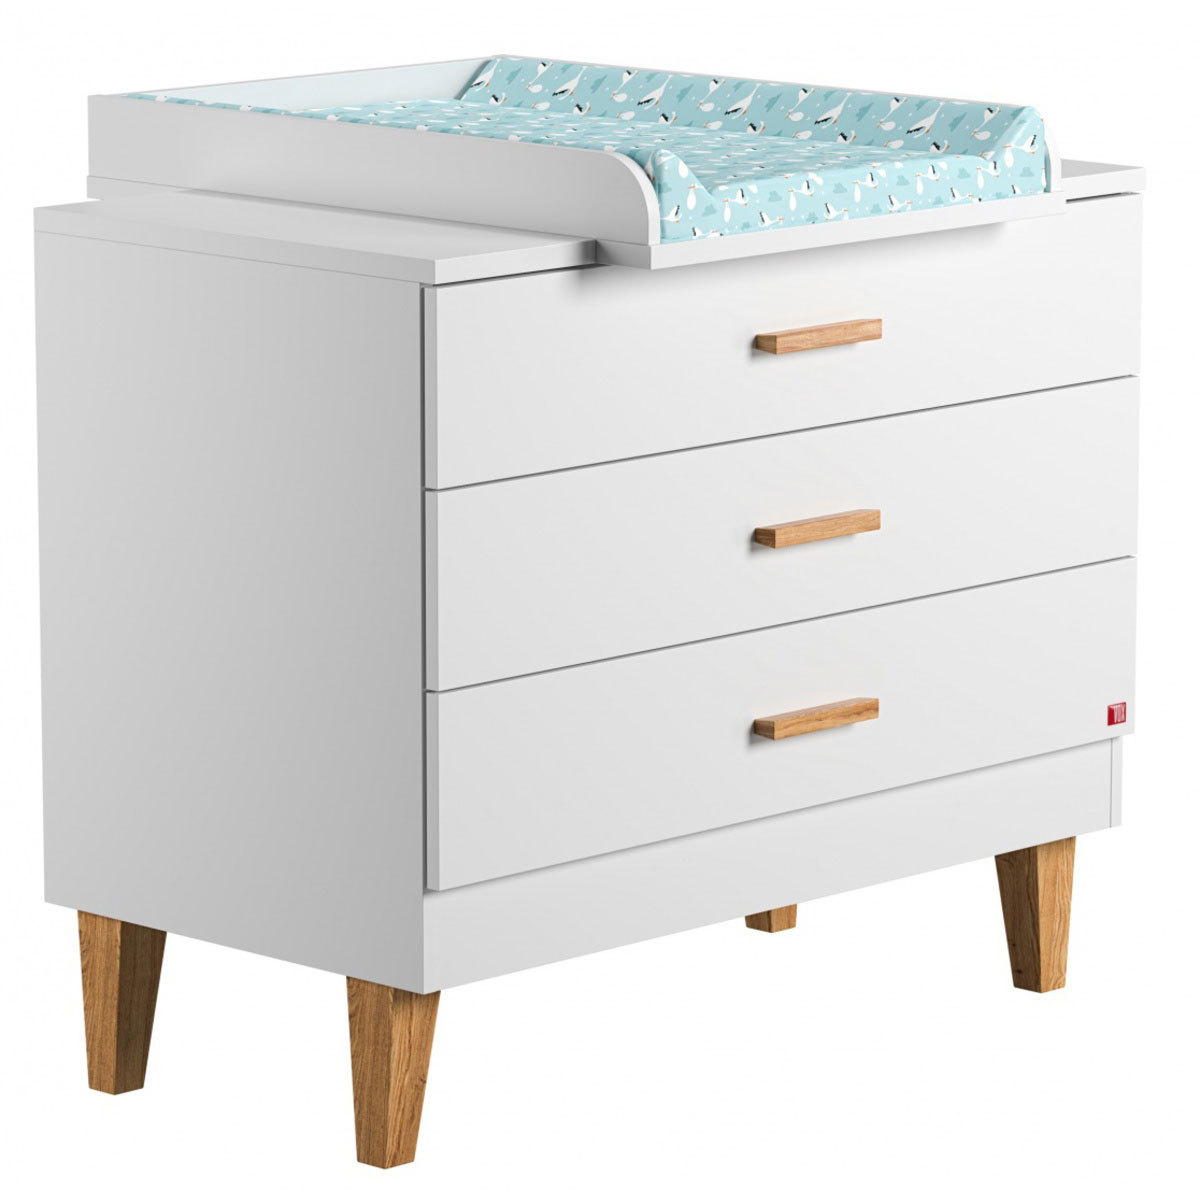 Vox meubles commode plan langer lounge blanc - Plan a langer a fixer sur commode ...